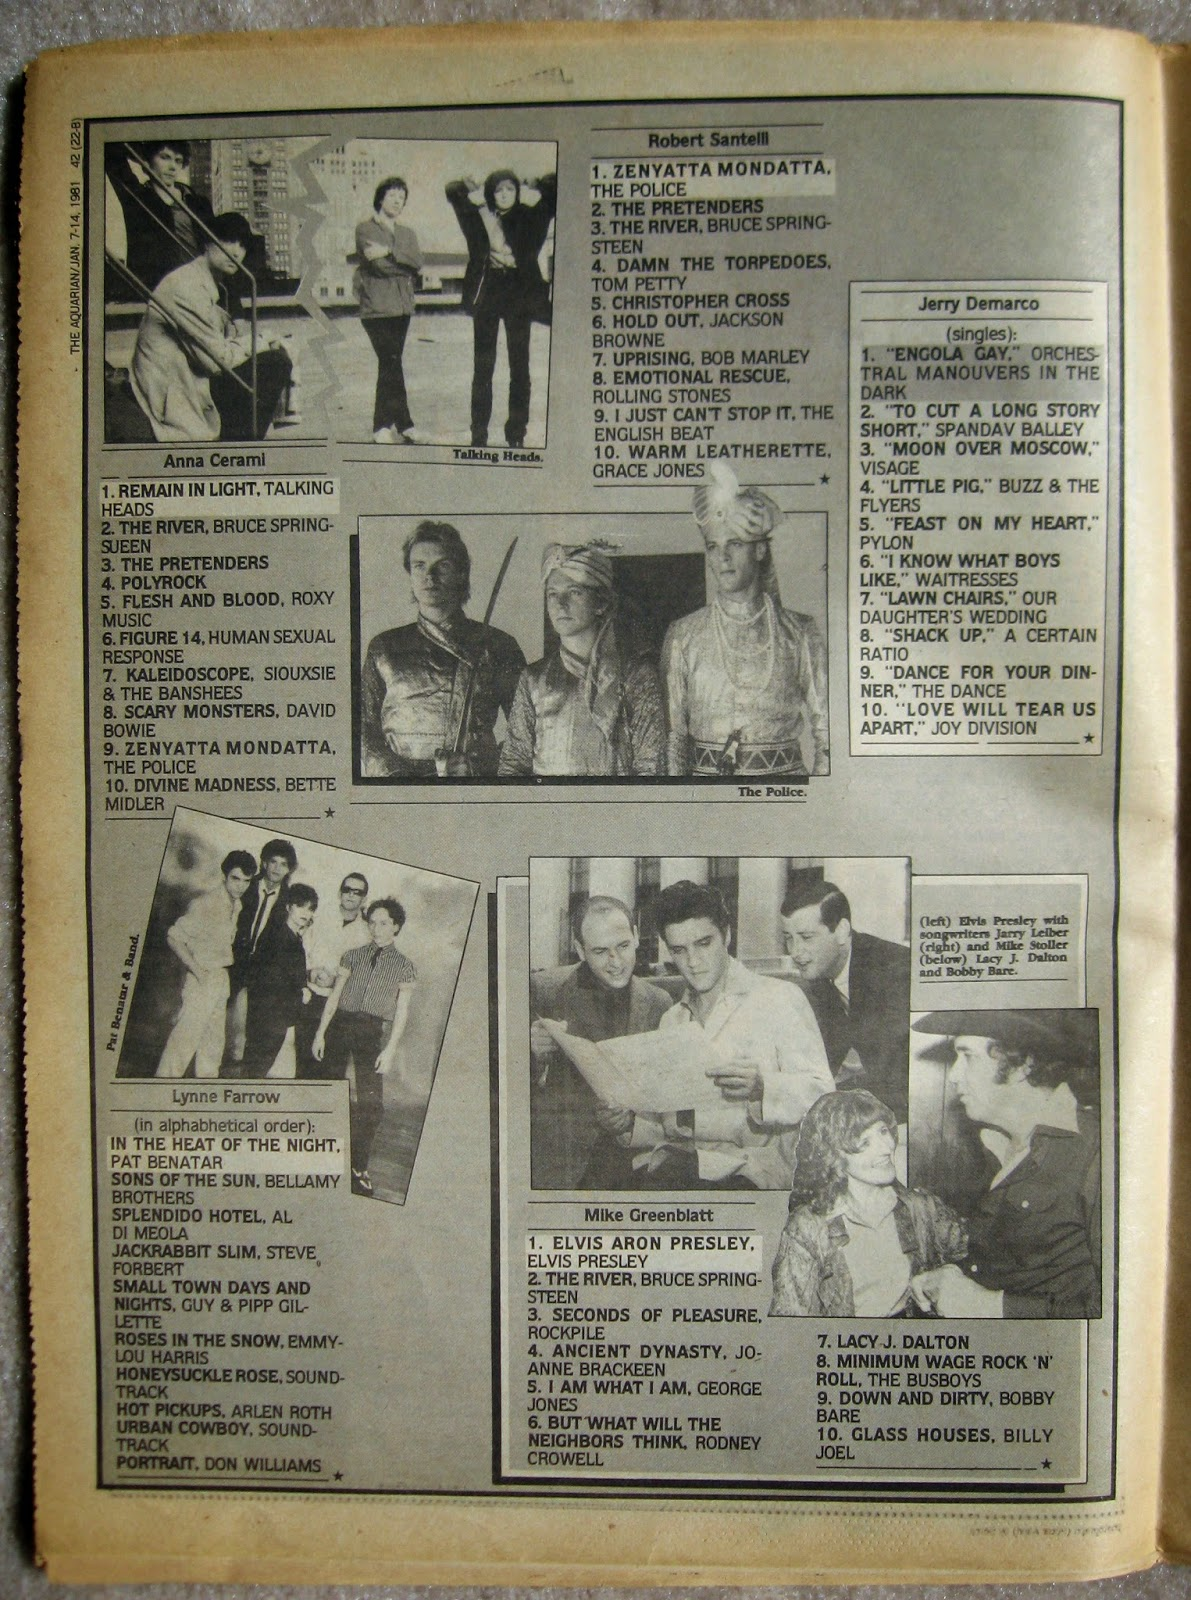 1980 top albums of the year... part 3 Aquarian Night Owl January 1981